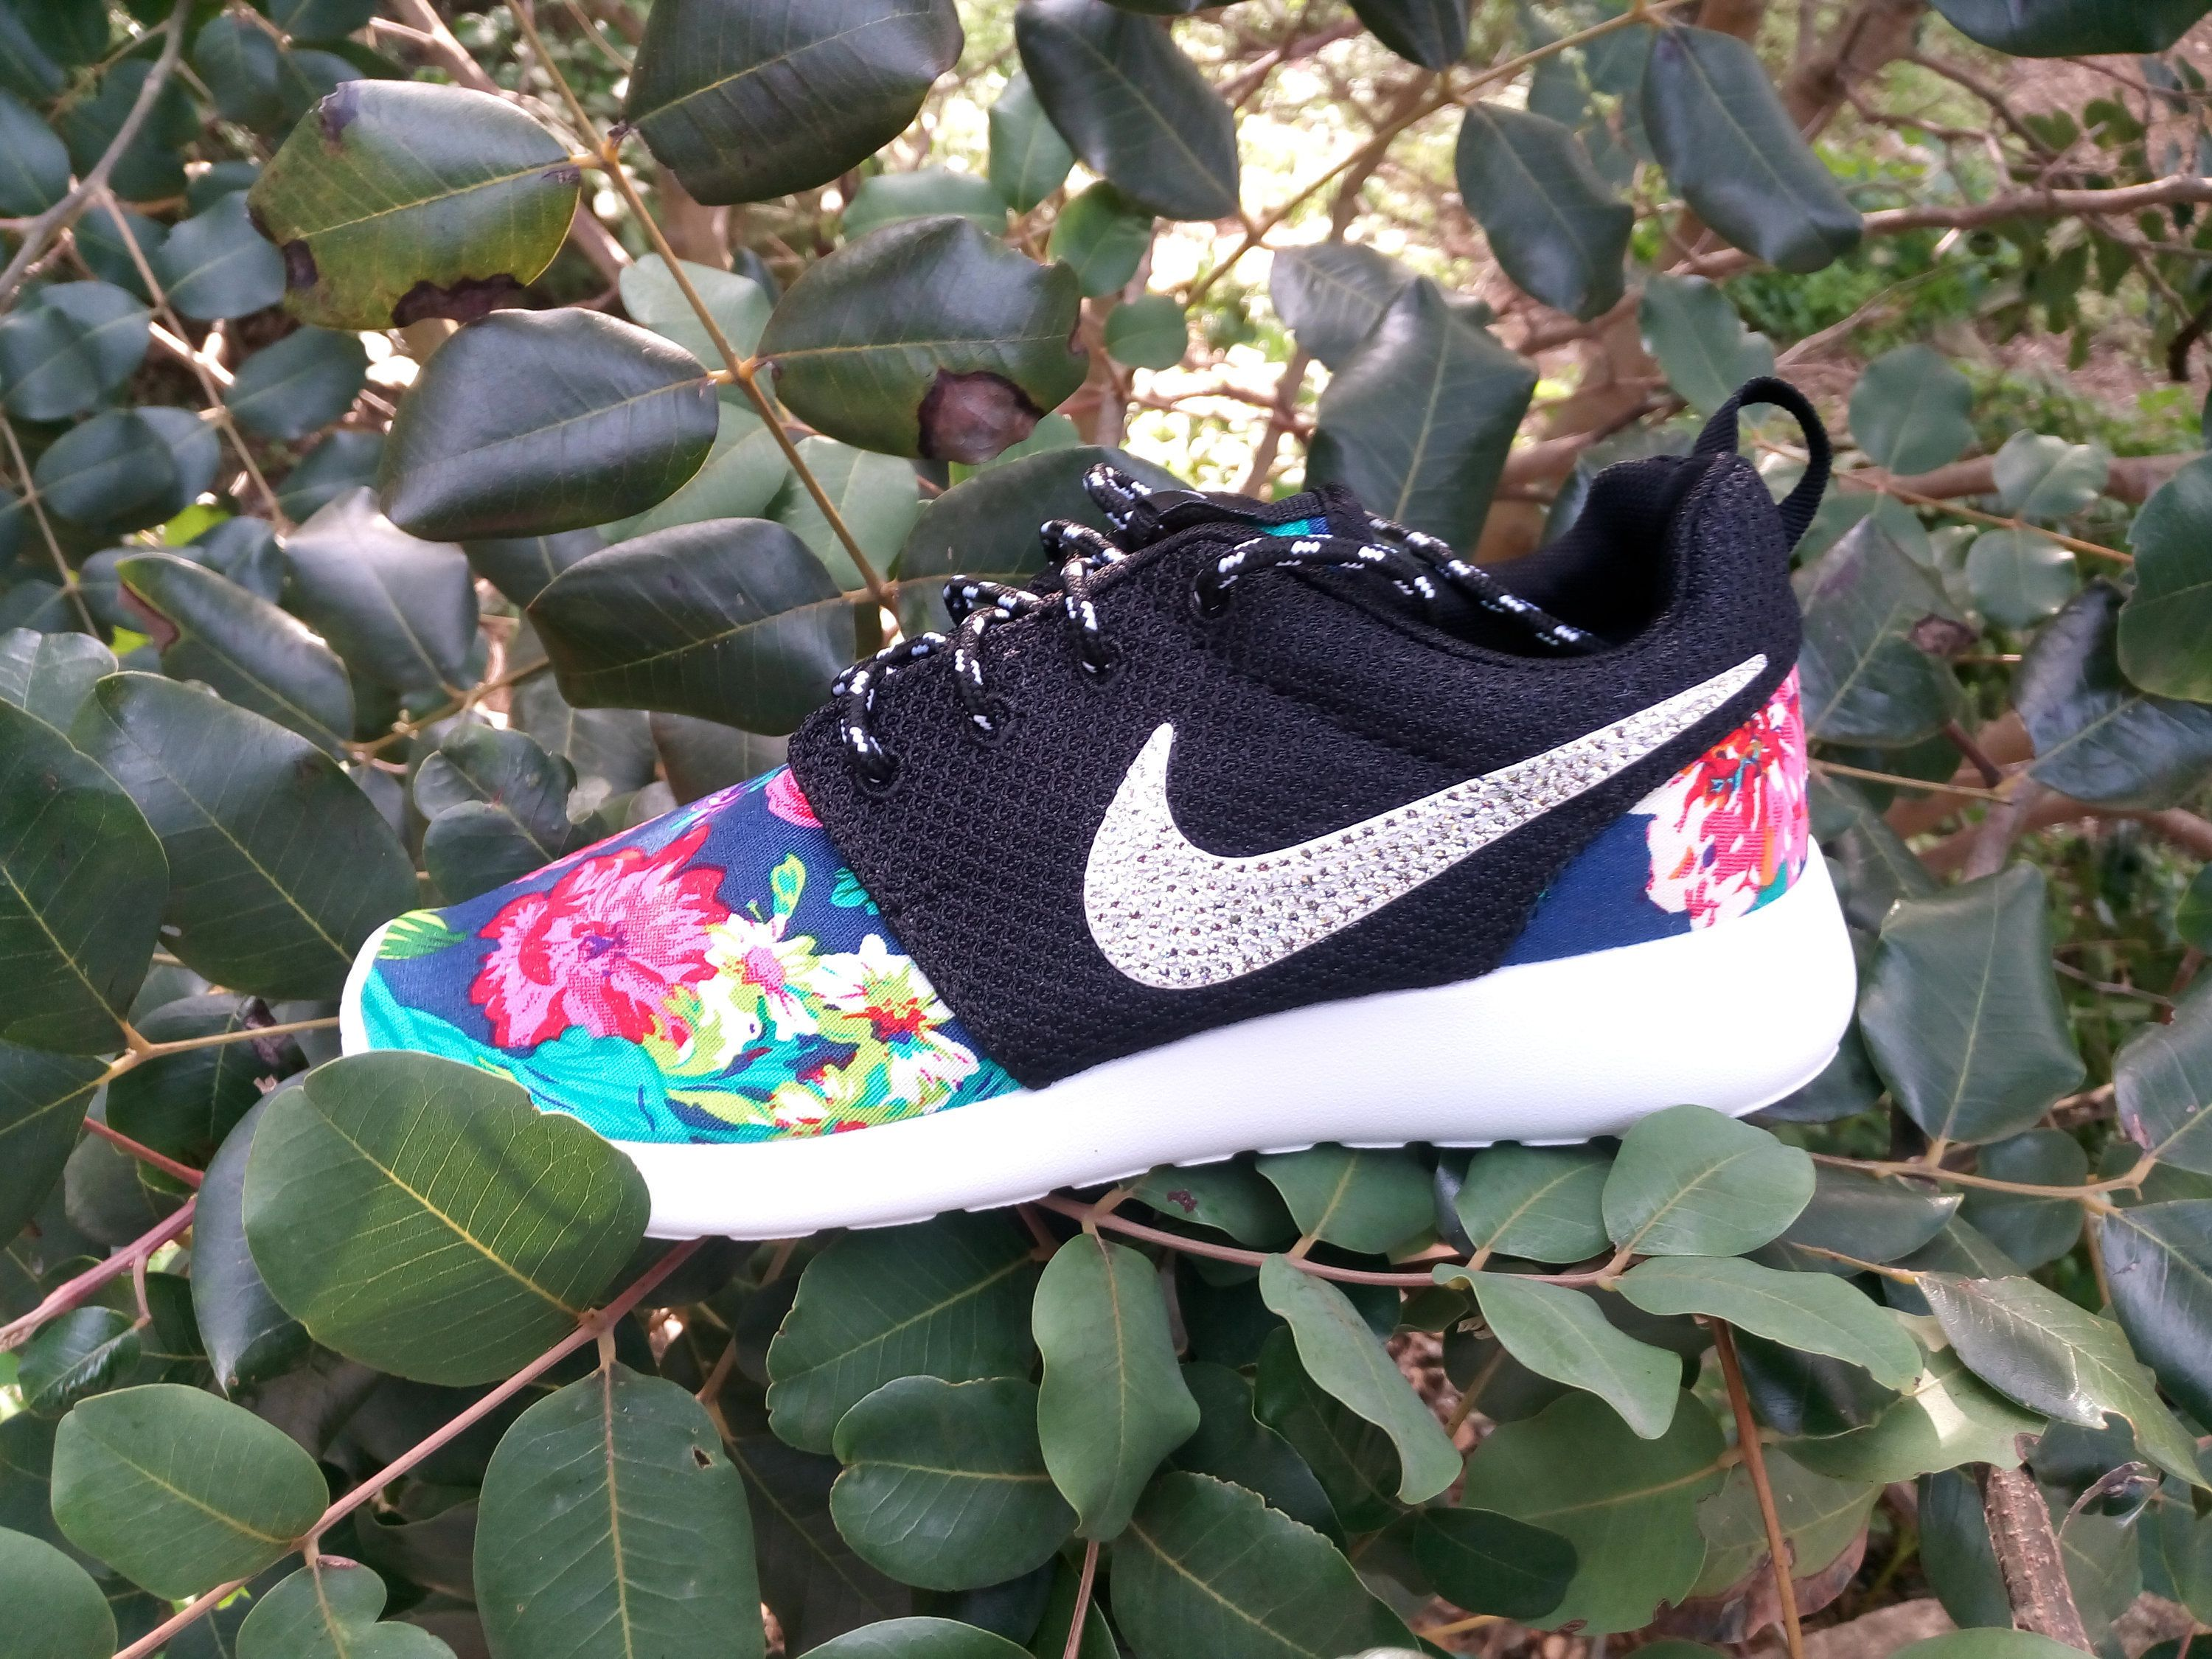 custom nike roshe run floral athletic shoes dark blue color customized with fabric  floral blinged with